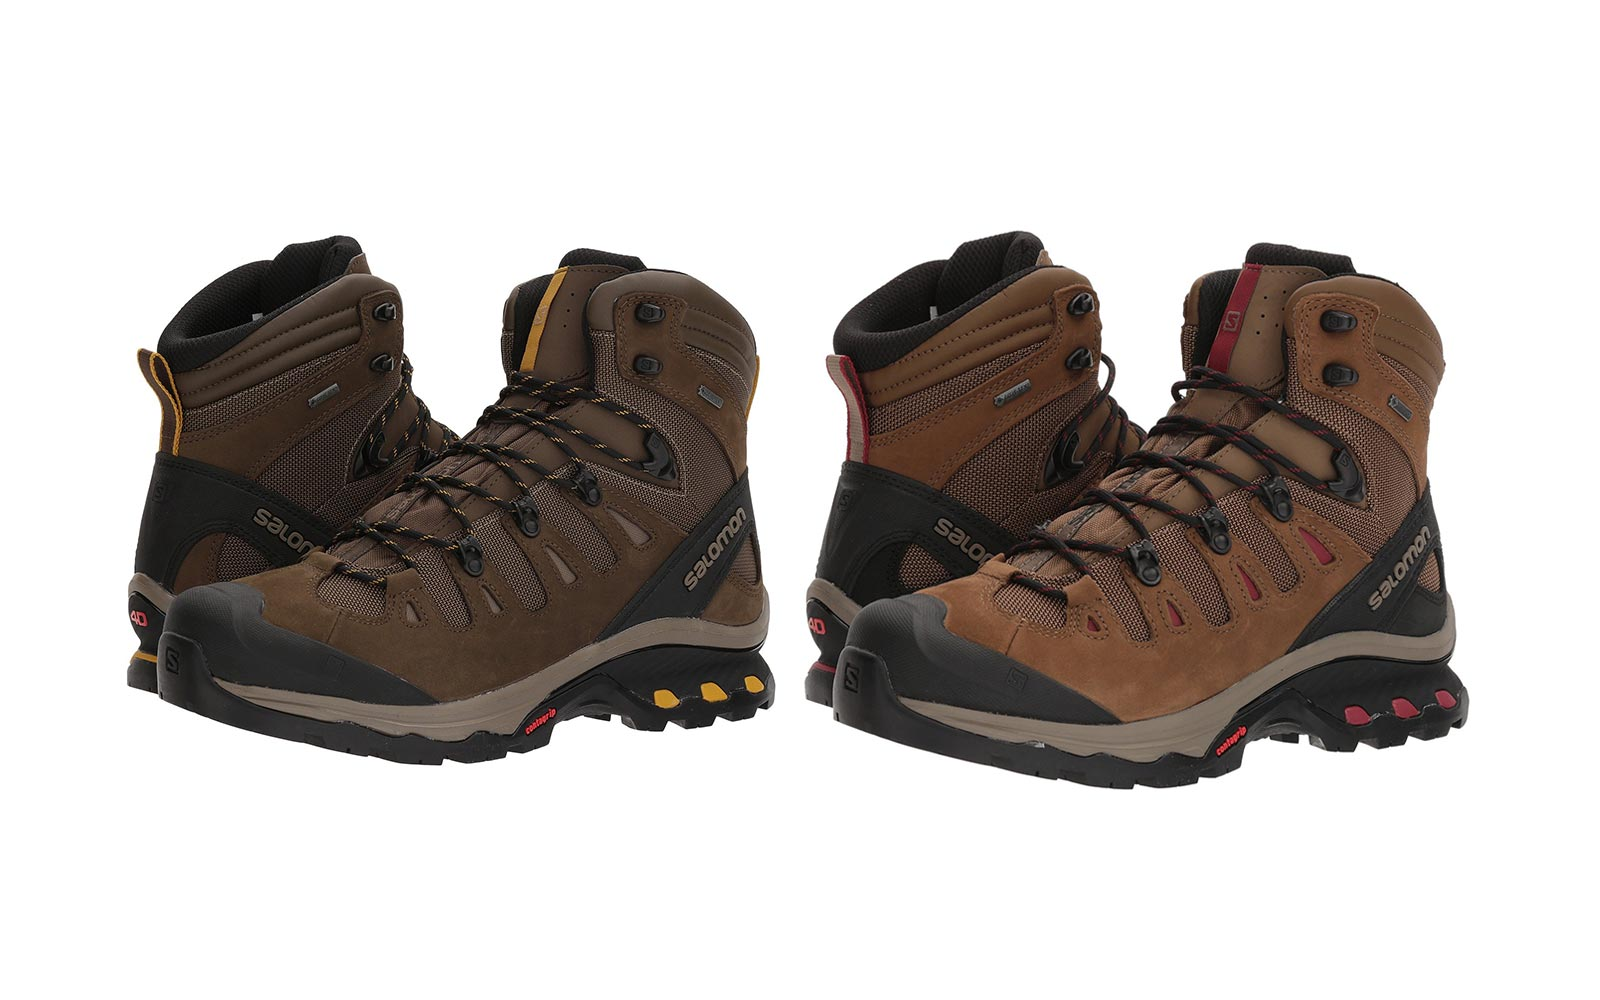 The Best Waterproof Hiking Boots For Men And Women Travel Leisure In addition to this striding ability (considered an enhancement bonus), these boots allow the wearer to make great leaps. the best waterproof hiking boots for